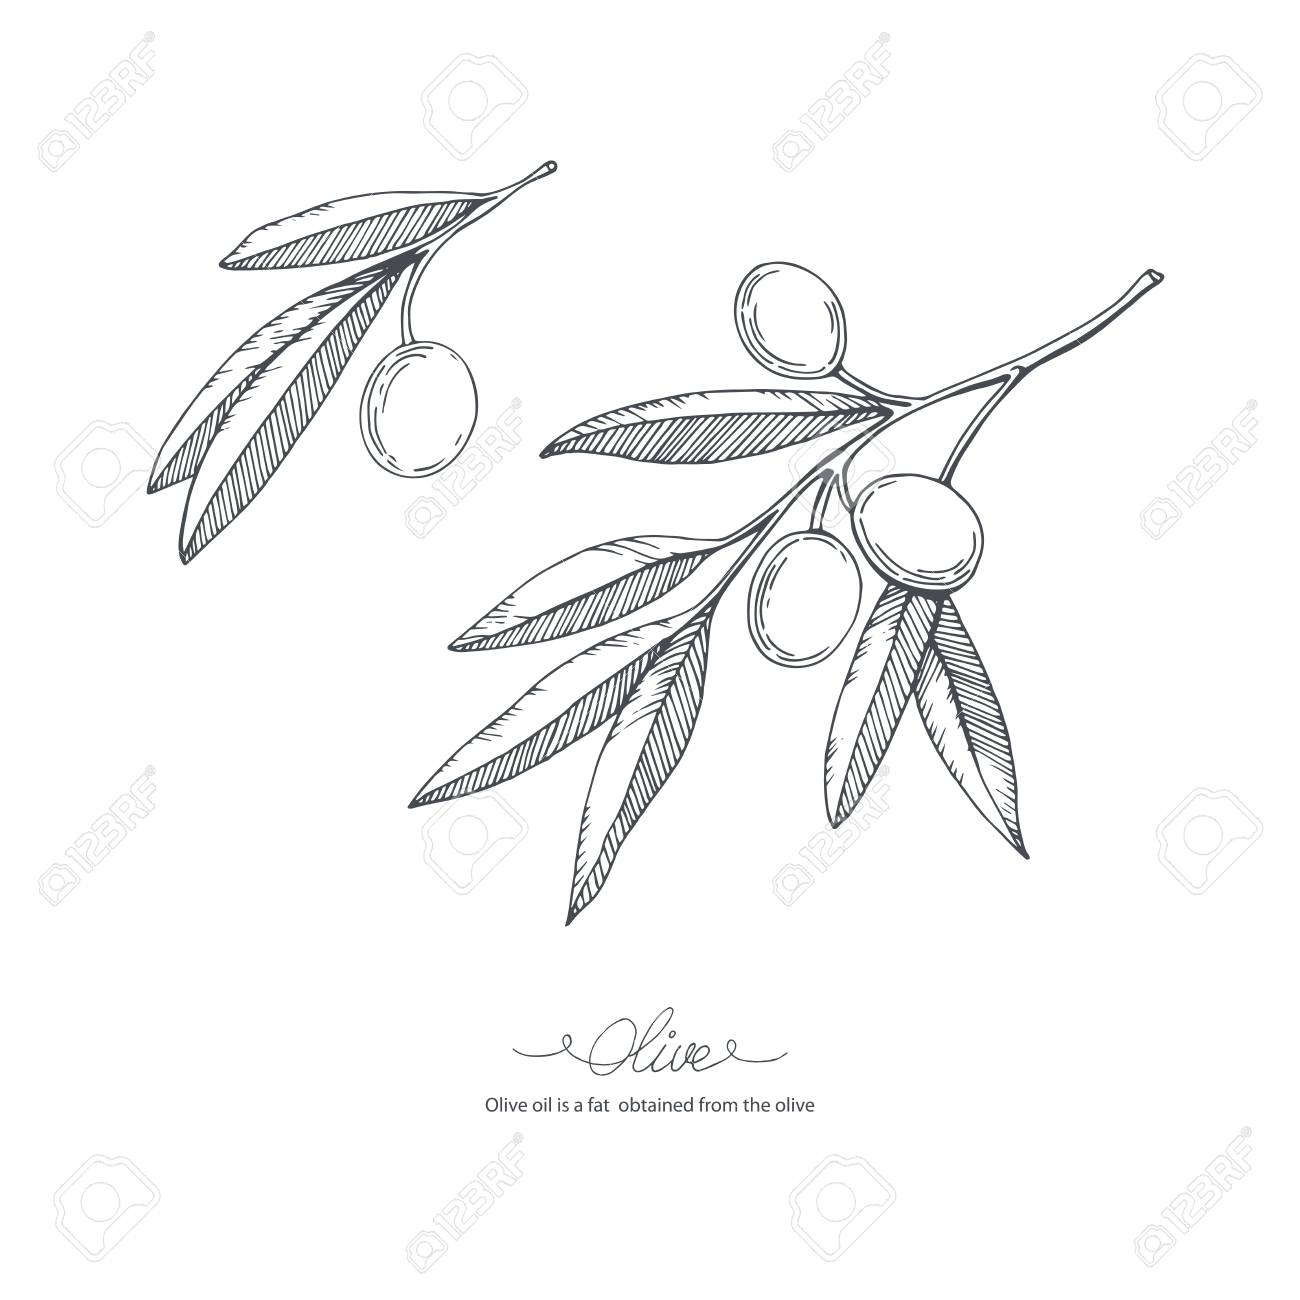 Hand Drawn Olive Branch Vector Sketch Illustration Royalty Free Cliparts Vectors And Stock Illustration Image 69812367